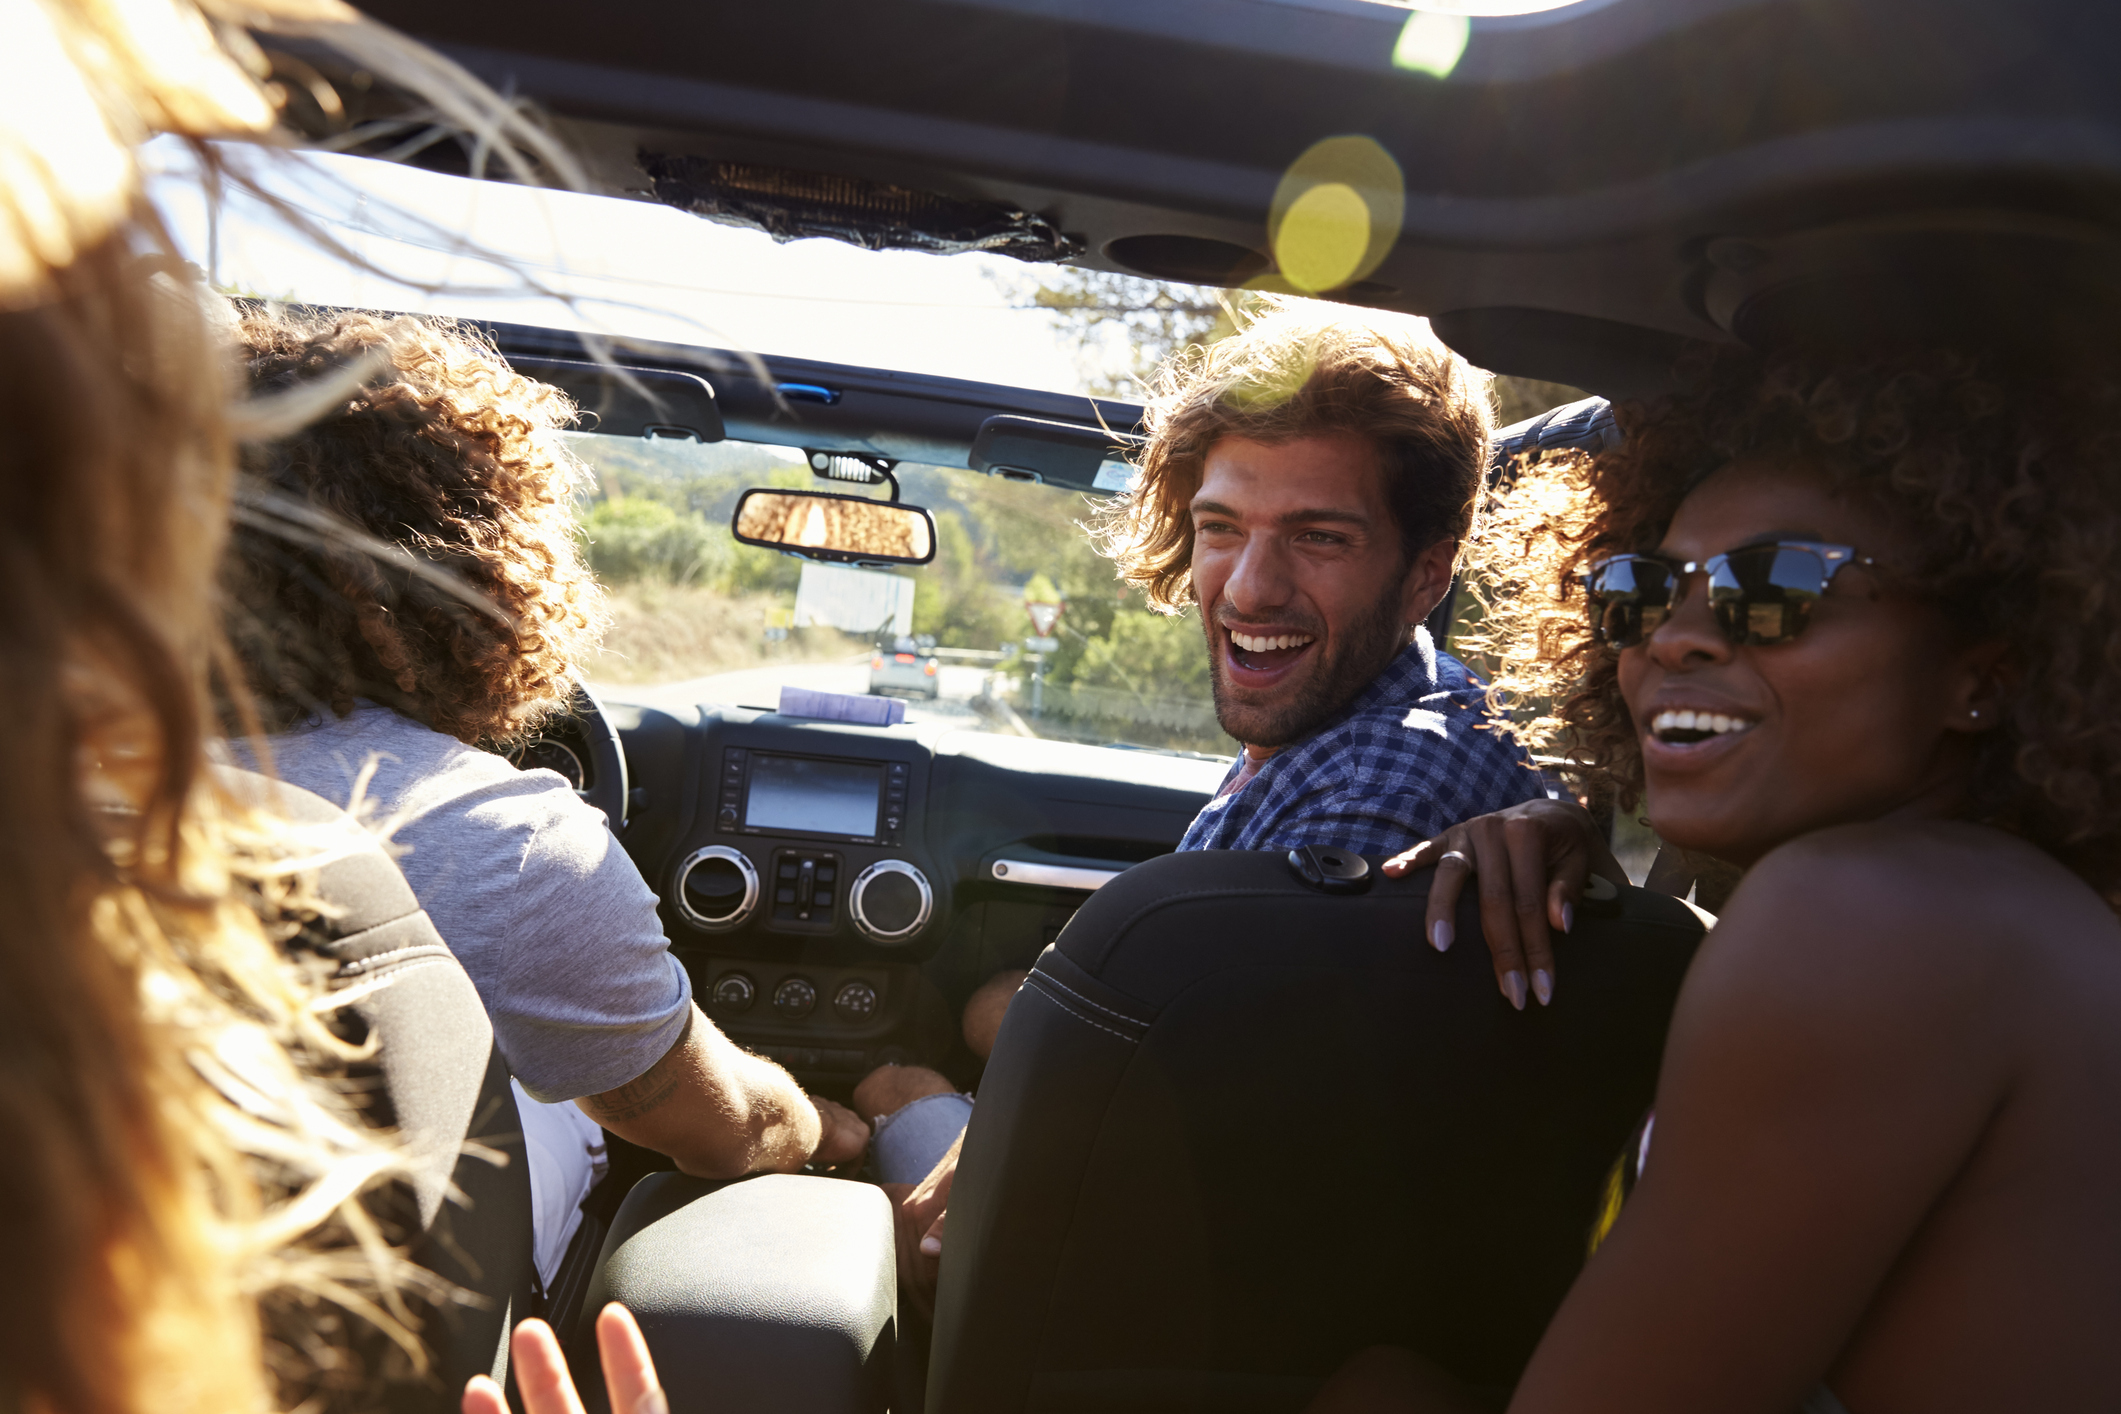 Why You Should Take a Road Trip to Your Destination